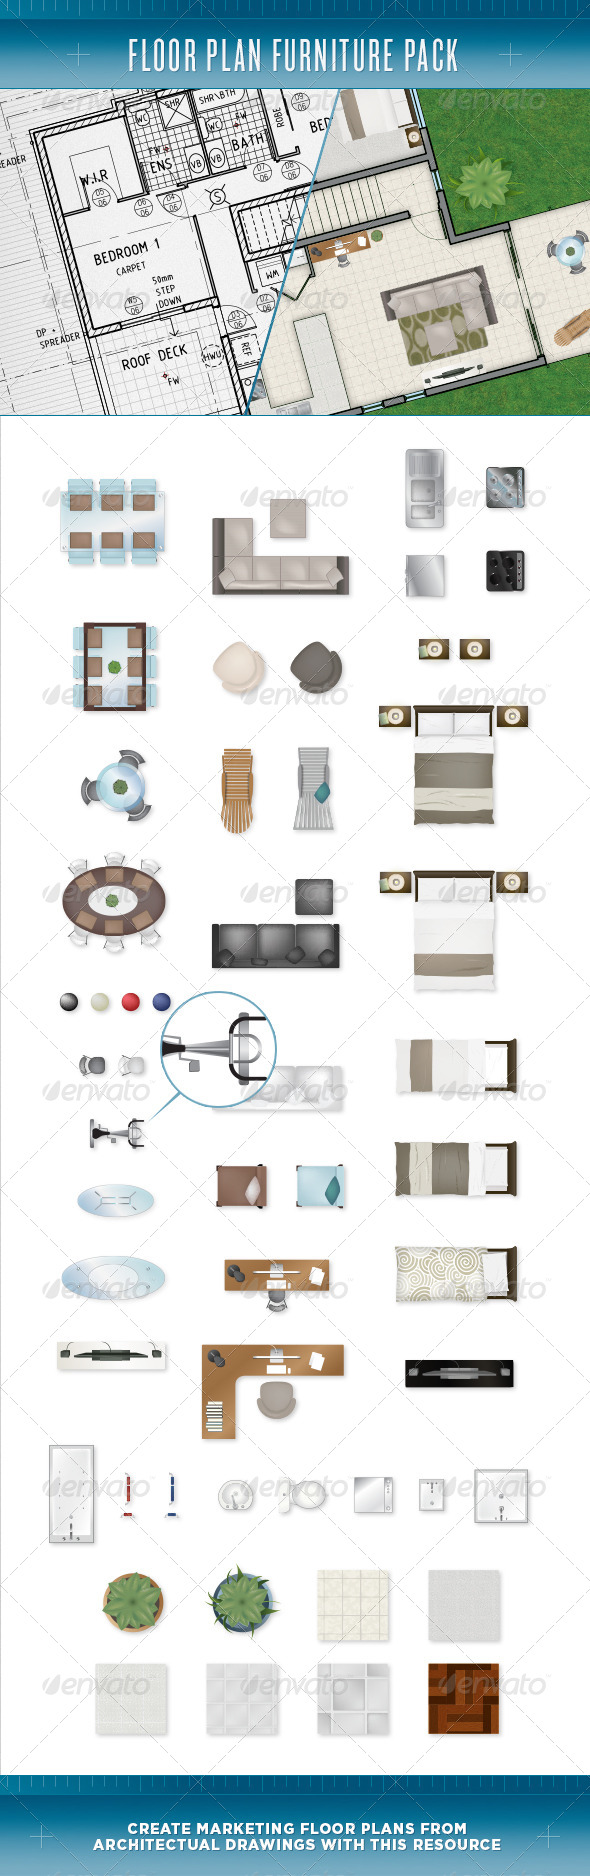 Floor Plan Furniture Pack - Objects Vectors